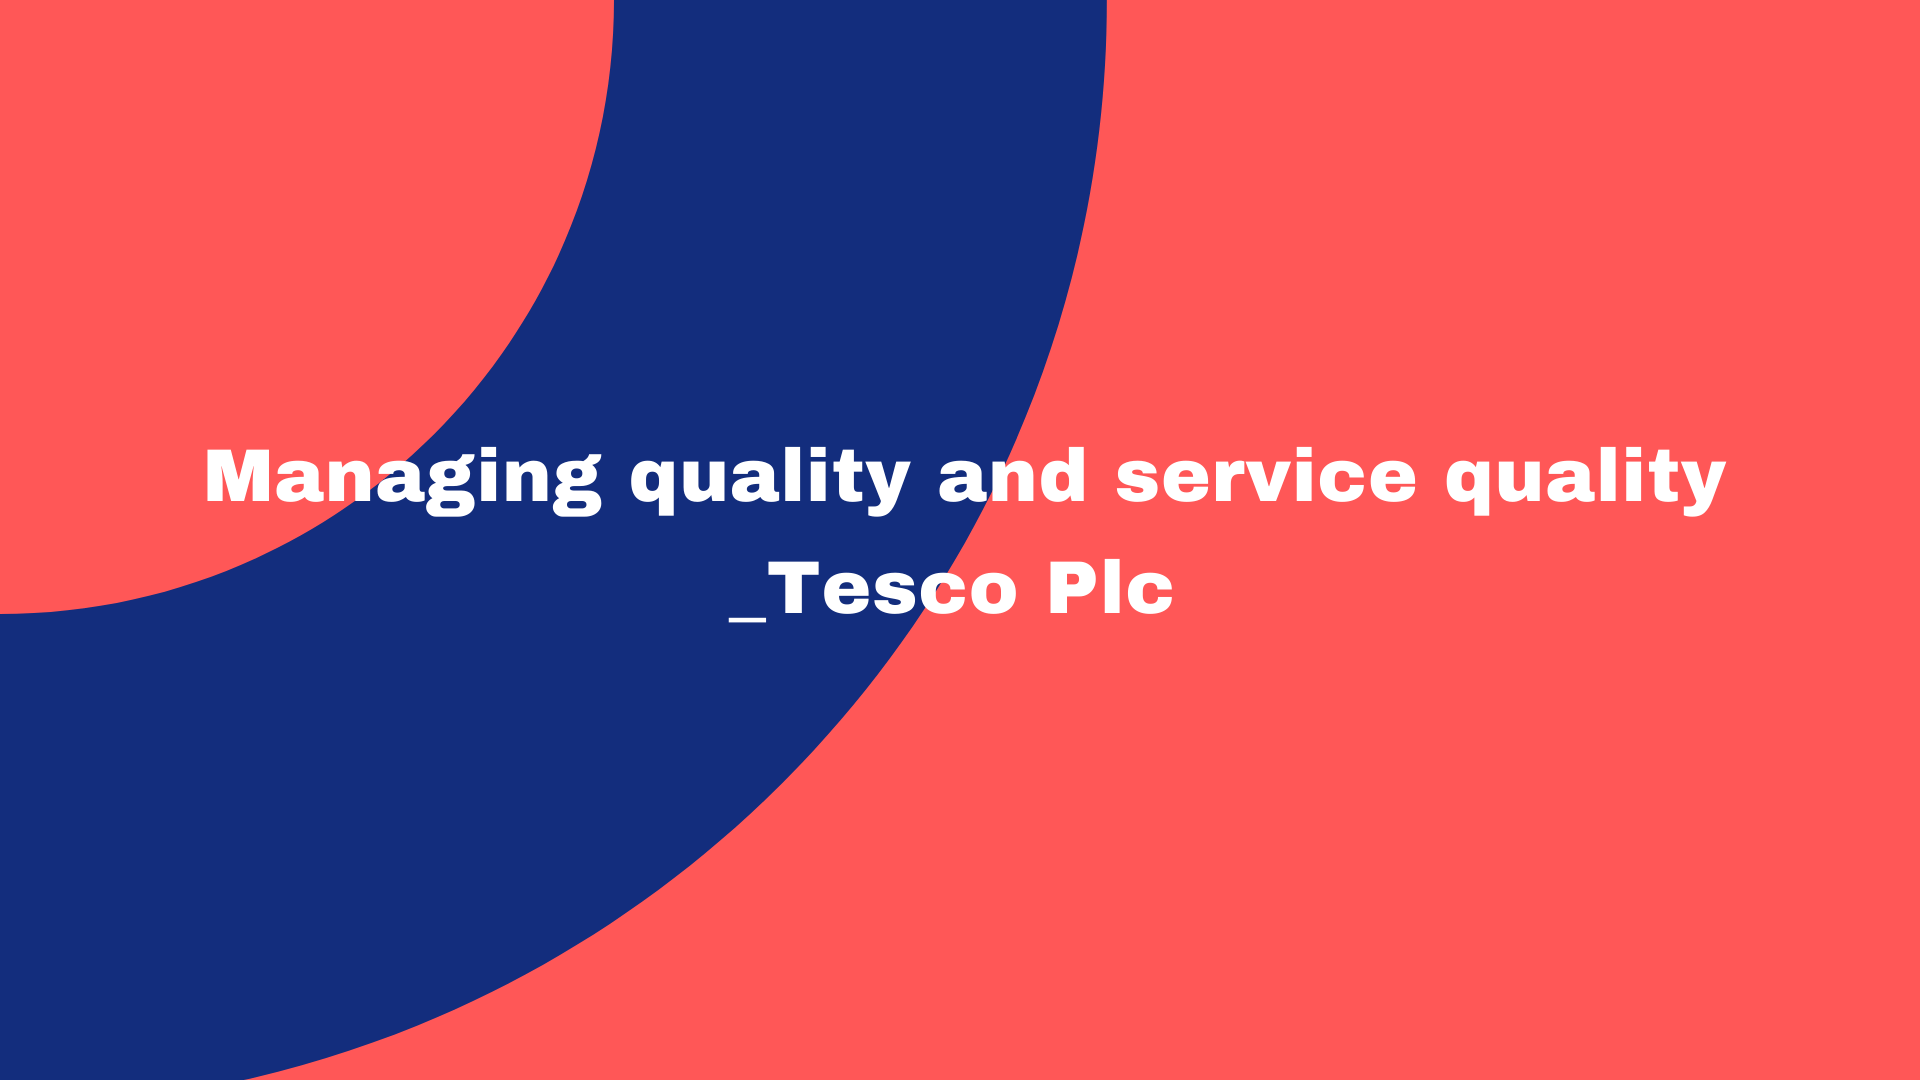 Managing quality and service quality _Tesco Plc